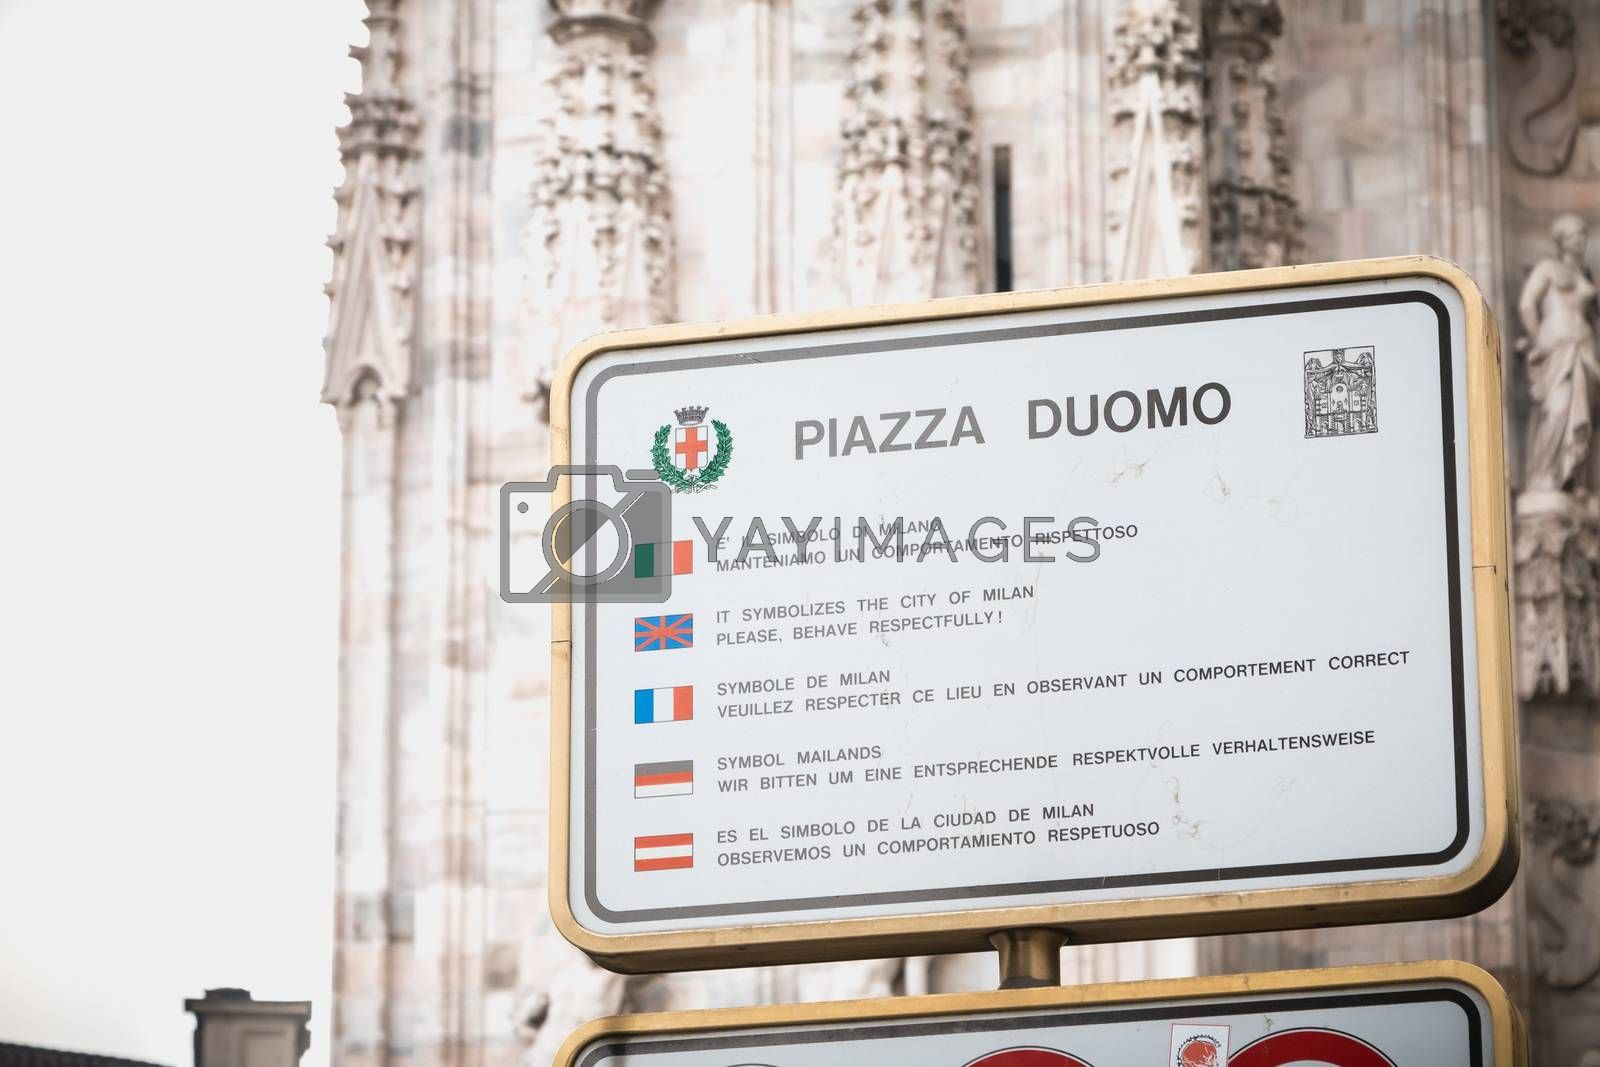 Milan, Italy - November 2, 2017: At the entrance to Duomo Square, a sign asks visitors to respect the place by observing the correct behavior